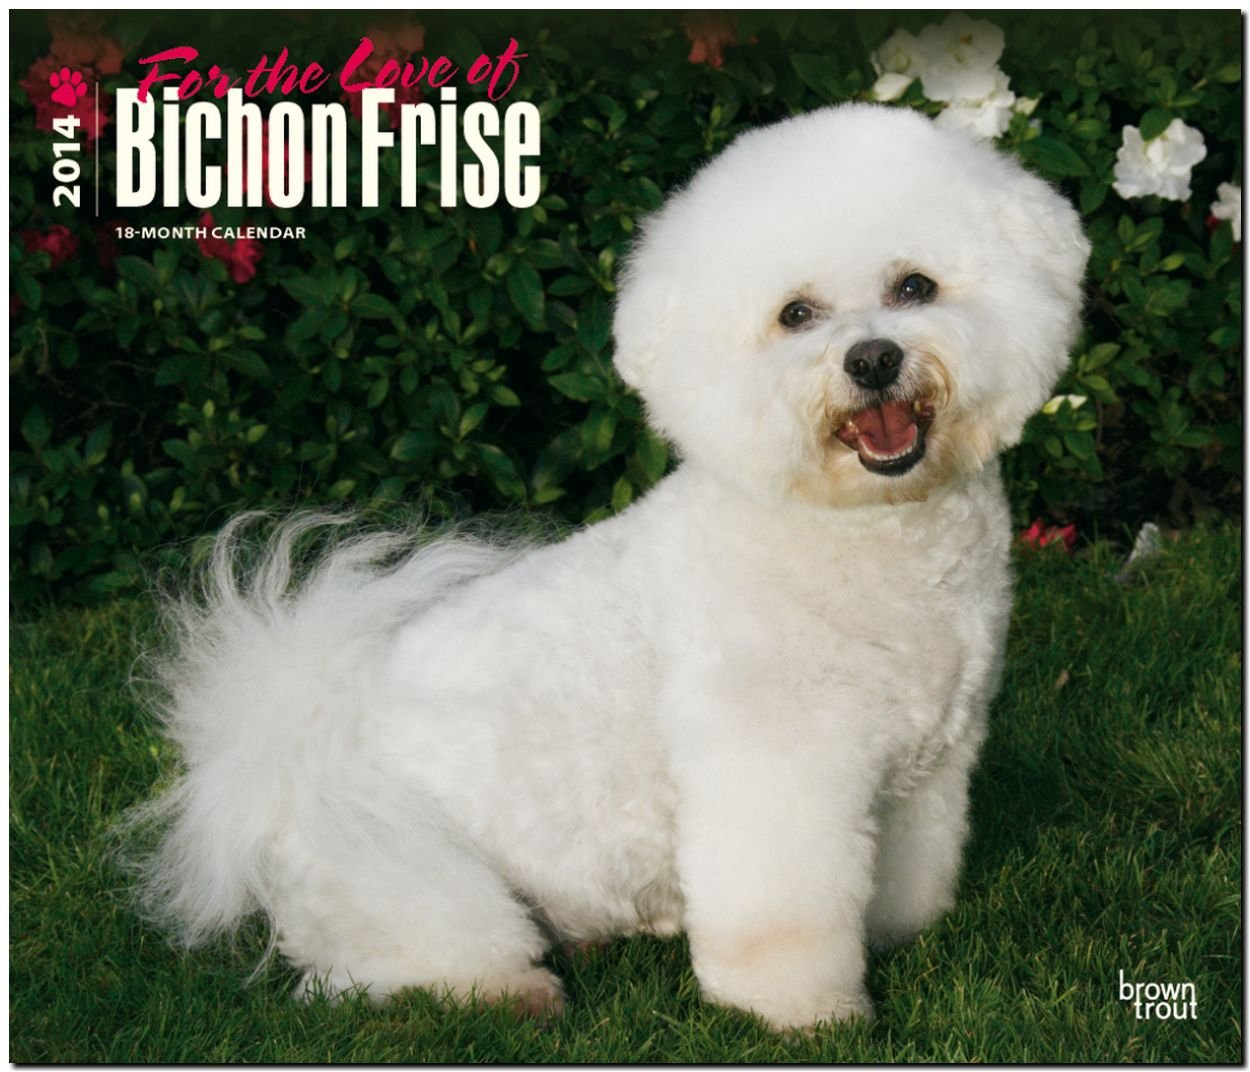 Bichon Frise - For the Love of 2014: Original BrownTrout-Kalender - Deluxe [Mehrsprachig] [Kalender]